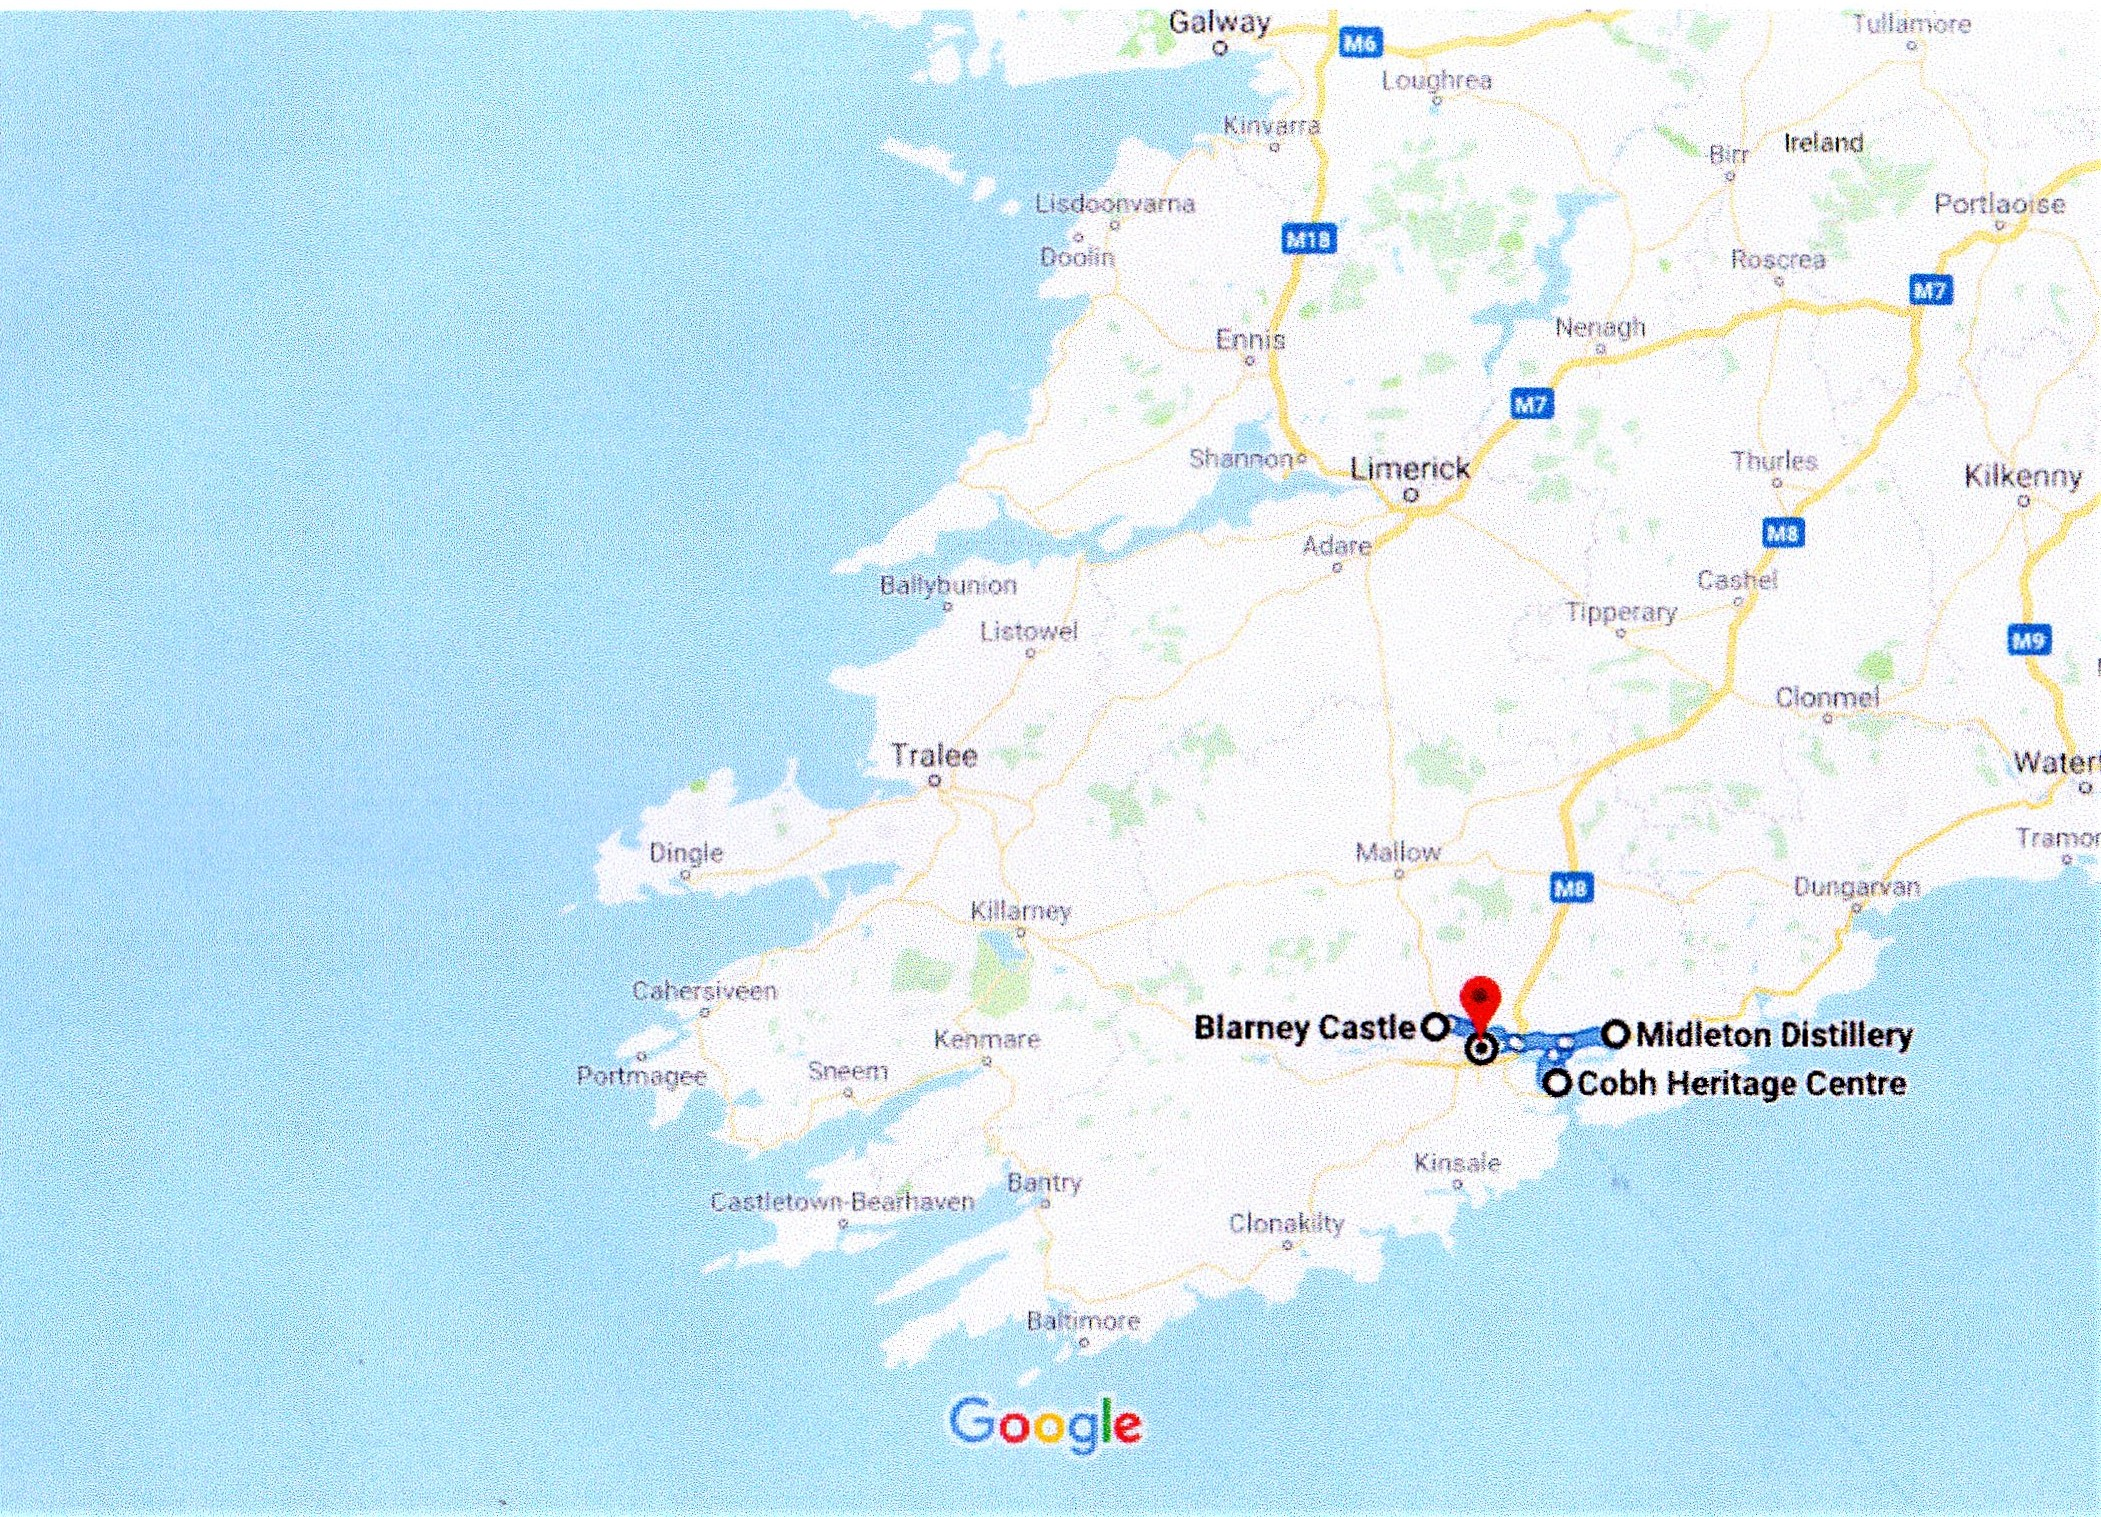 Google map of cork city and surrounding areas